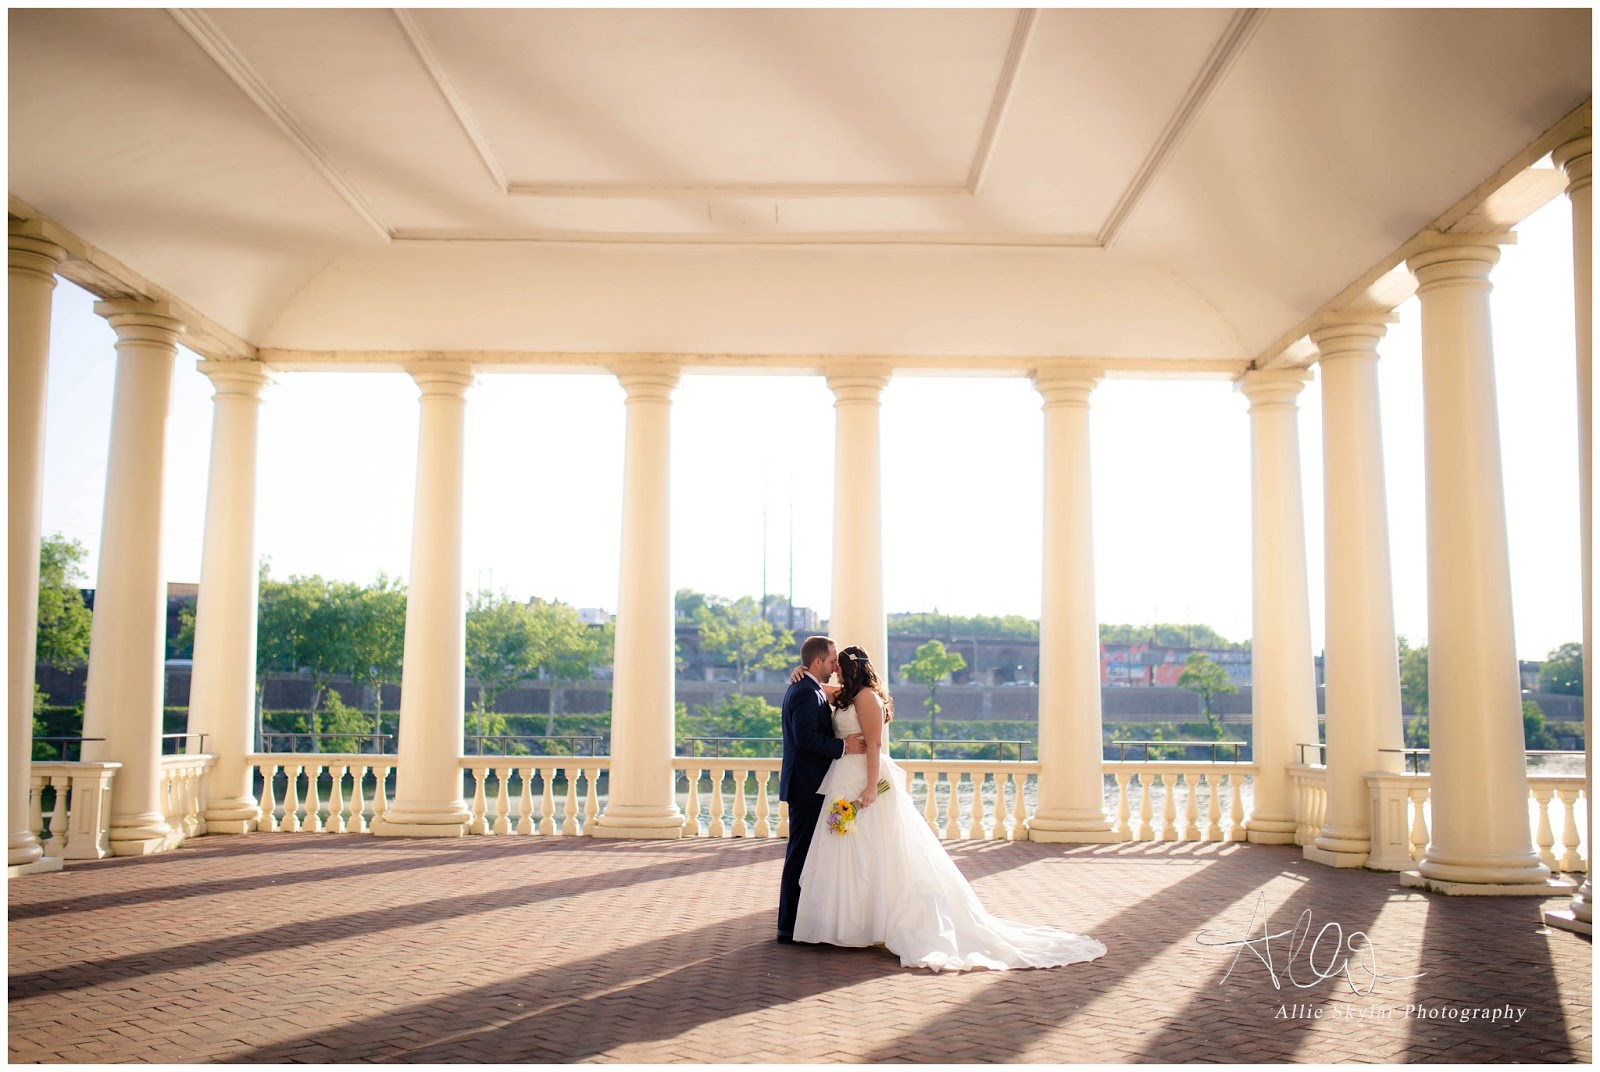 Stunning Philadelphia Wedding Photography At Water Works